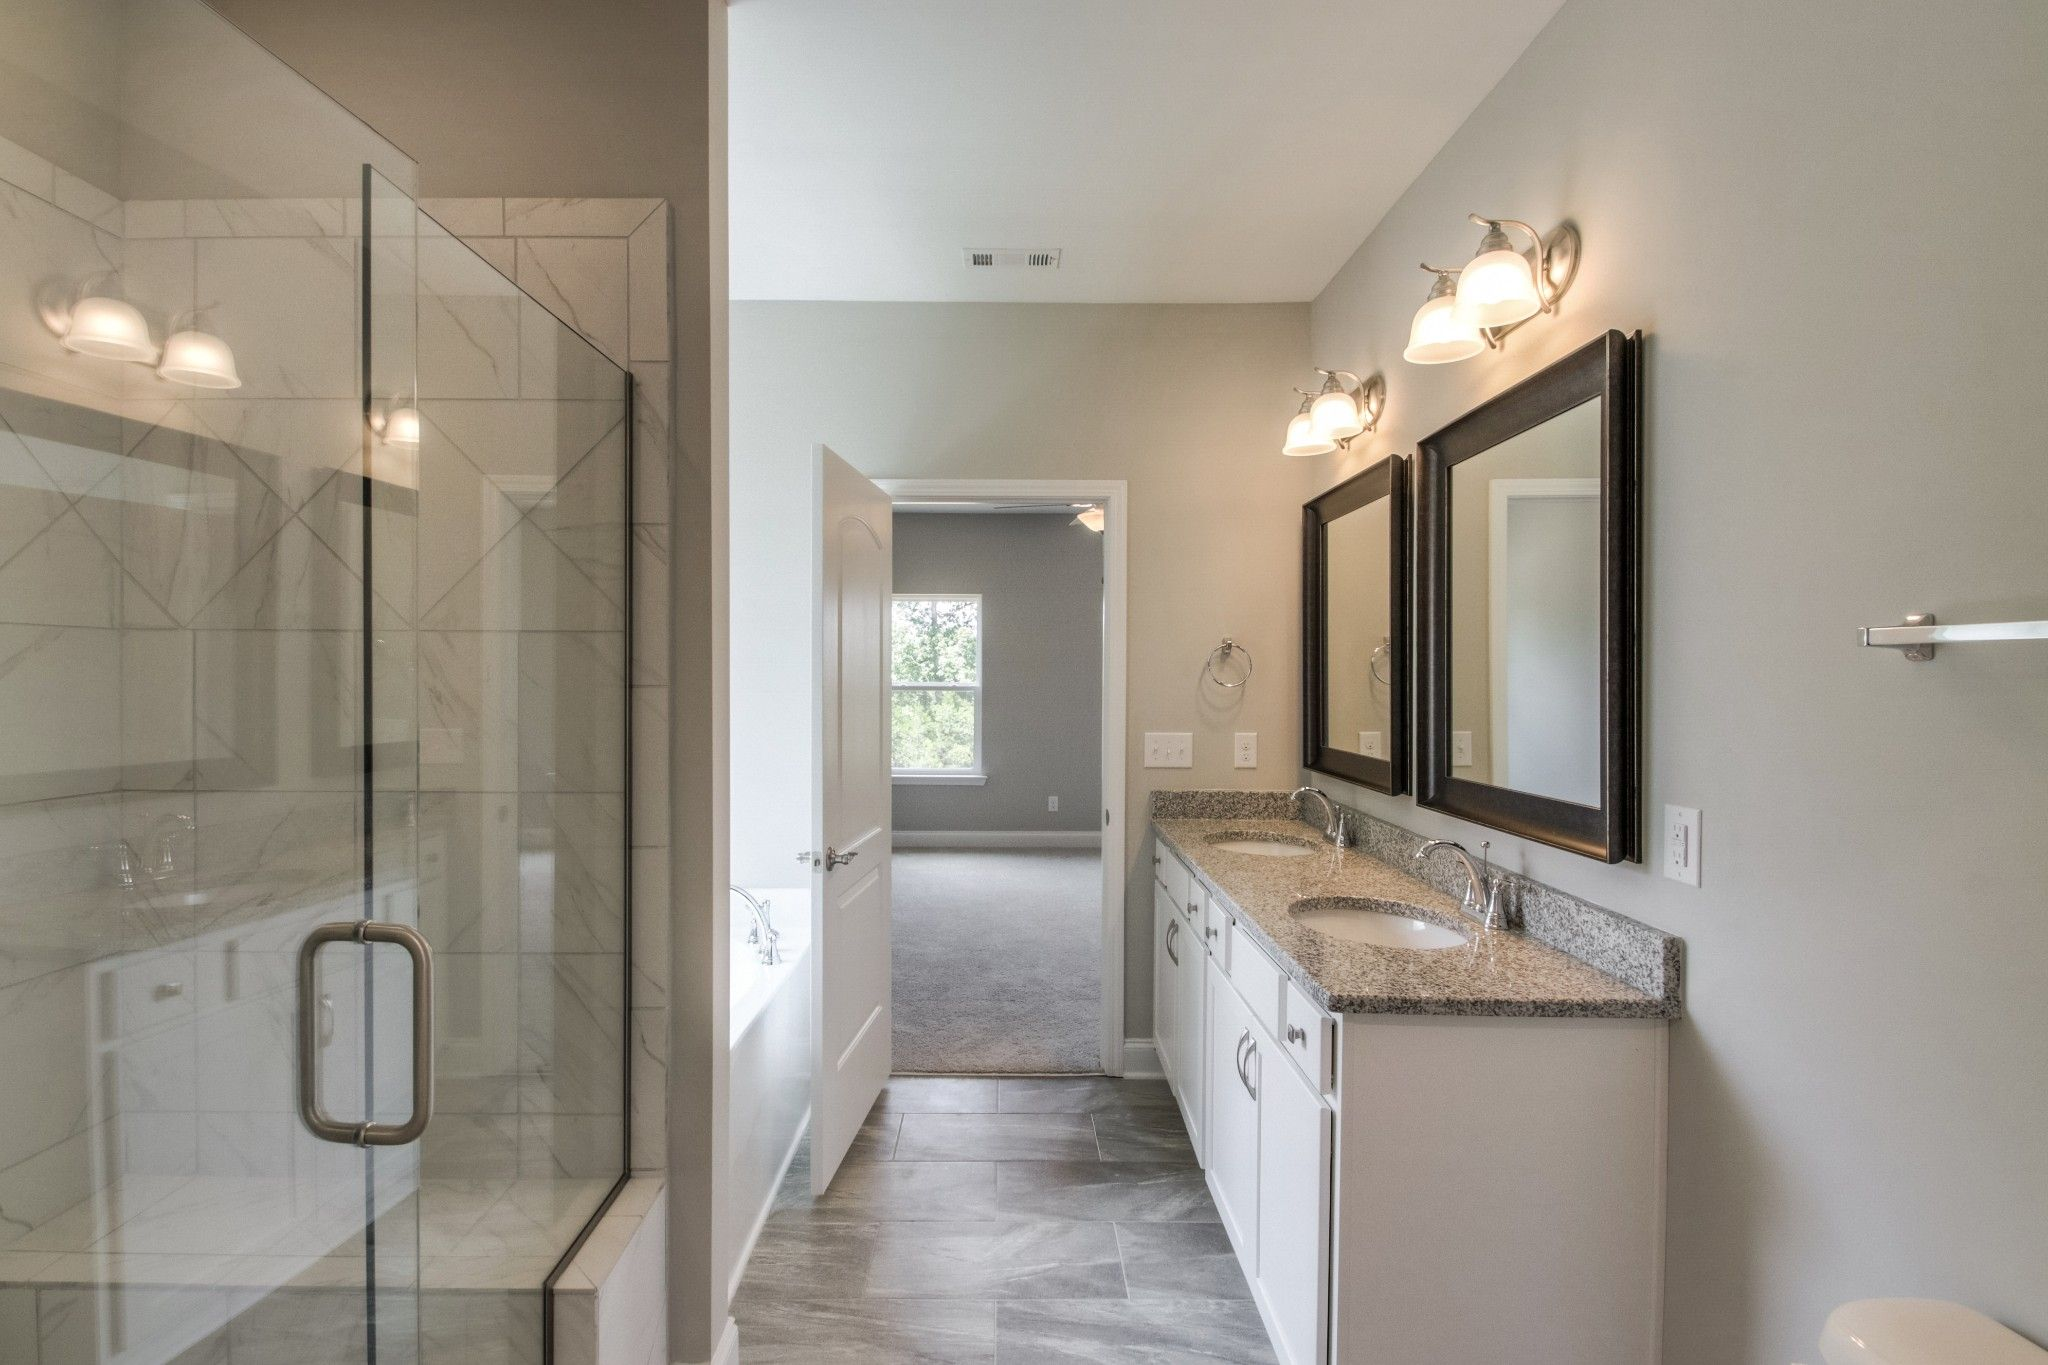 Bathroom featured in The Ridgemont By Goodall Homes in Nashville, TN